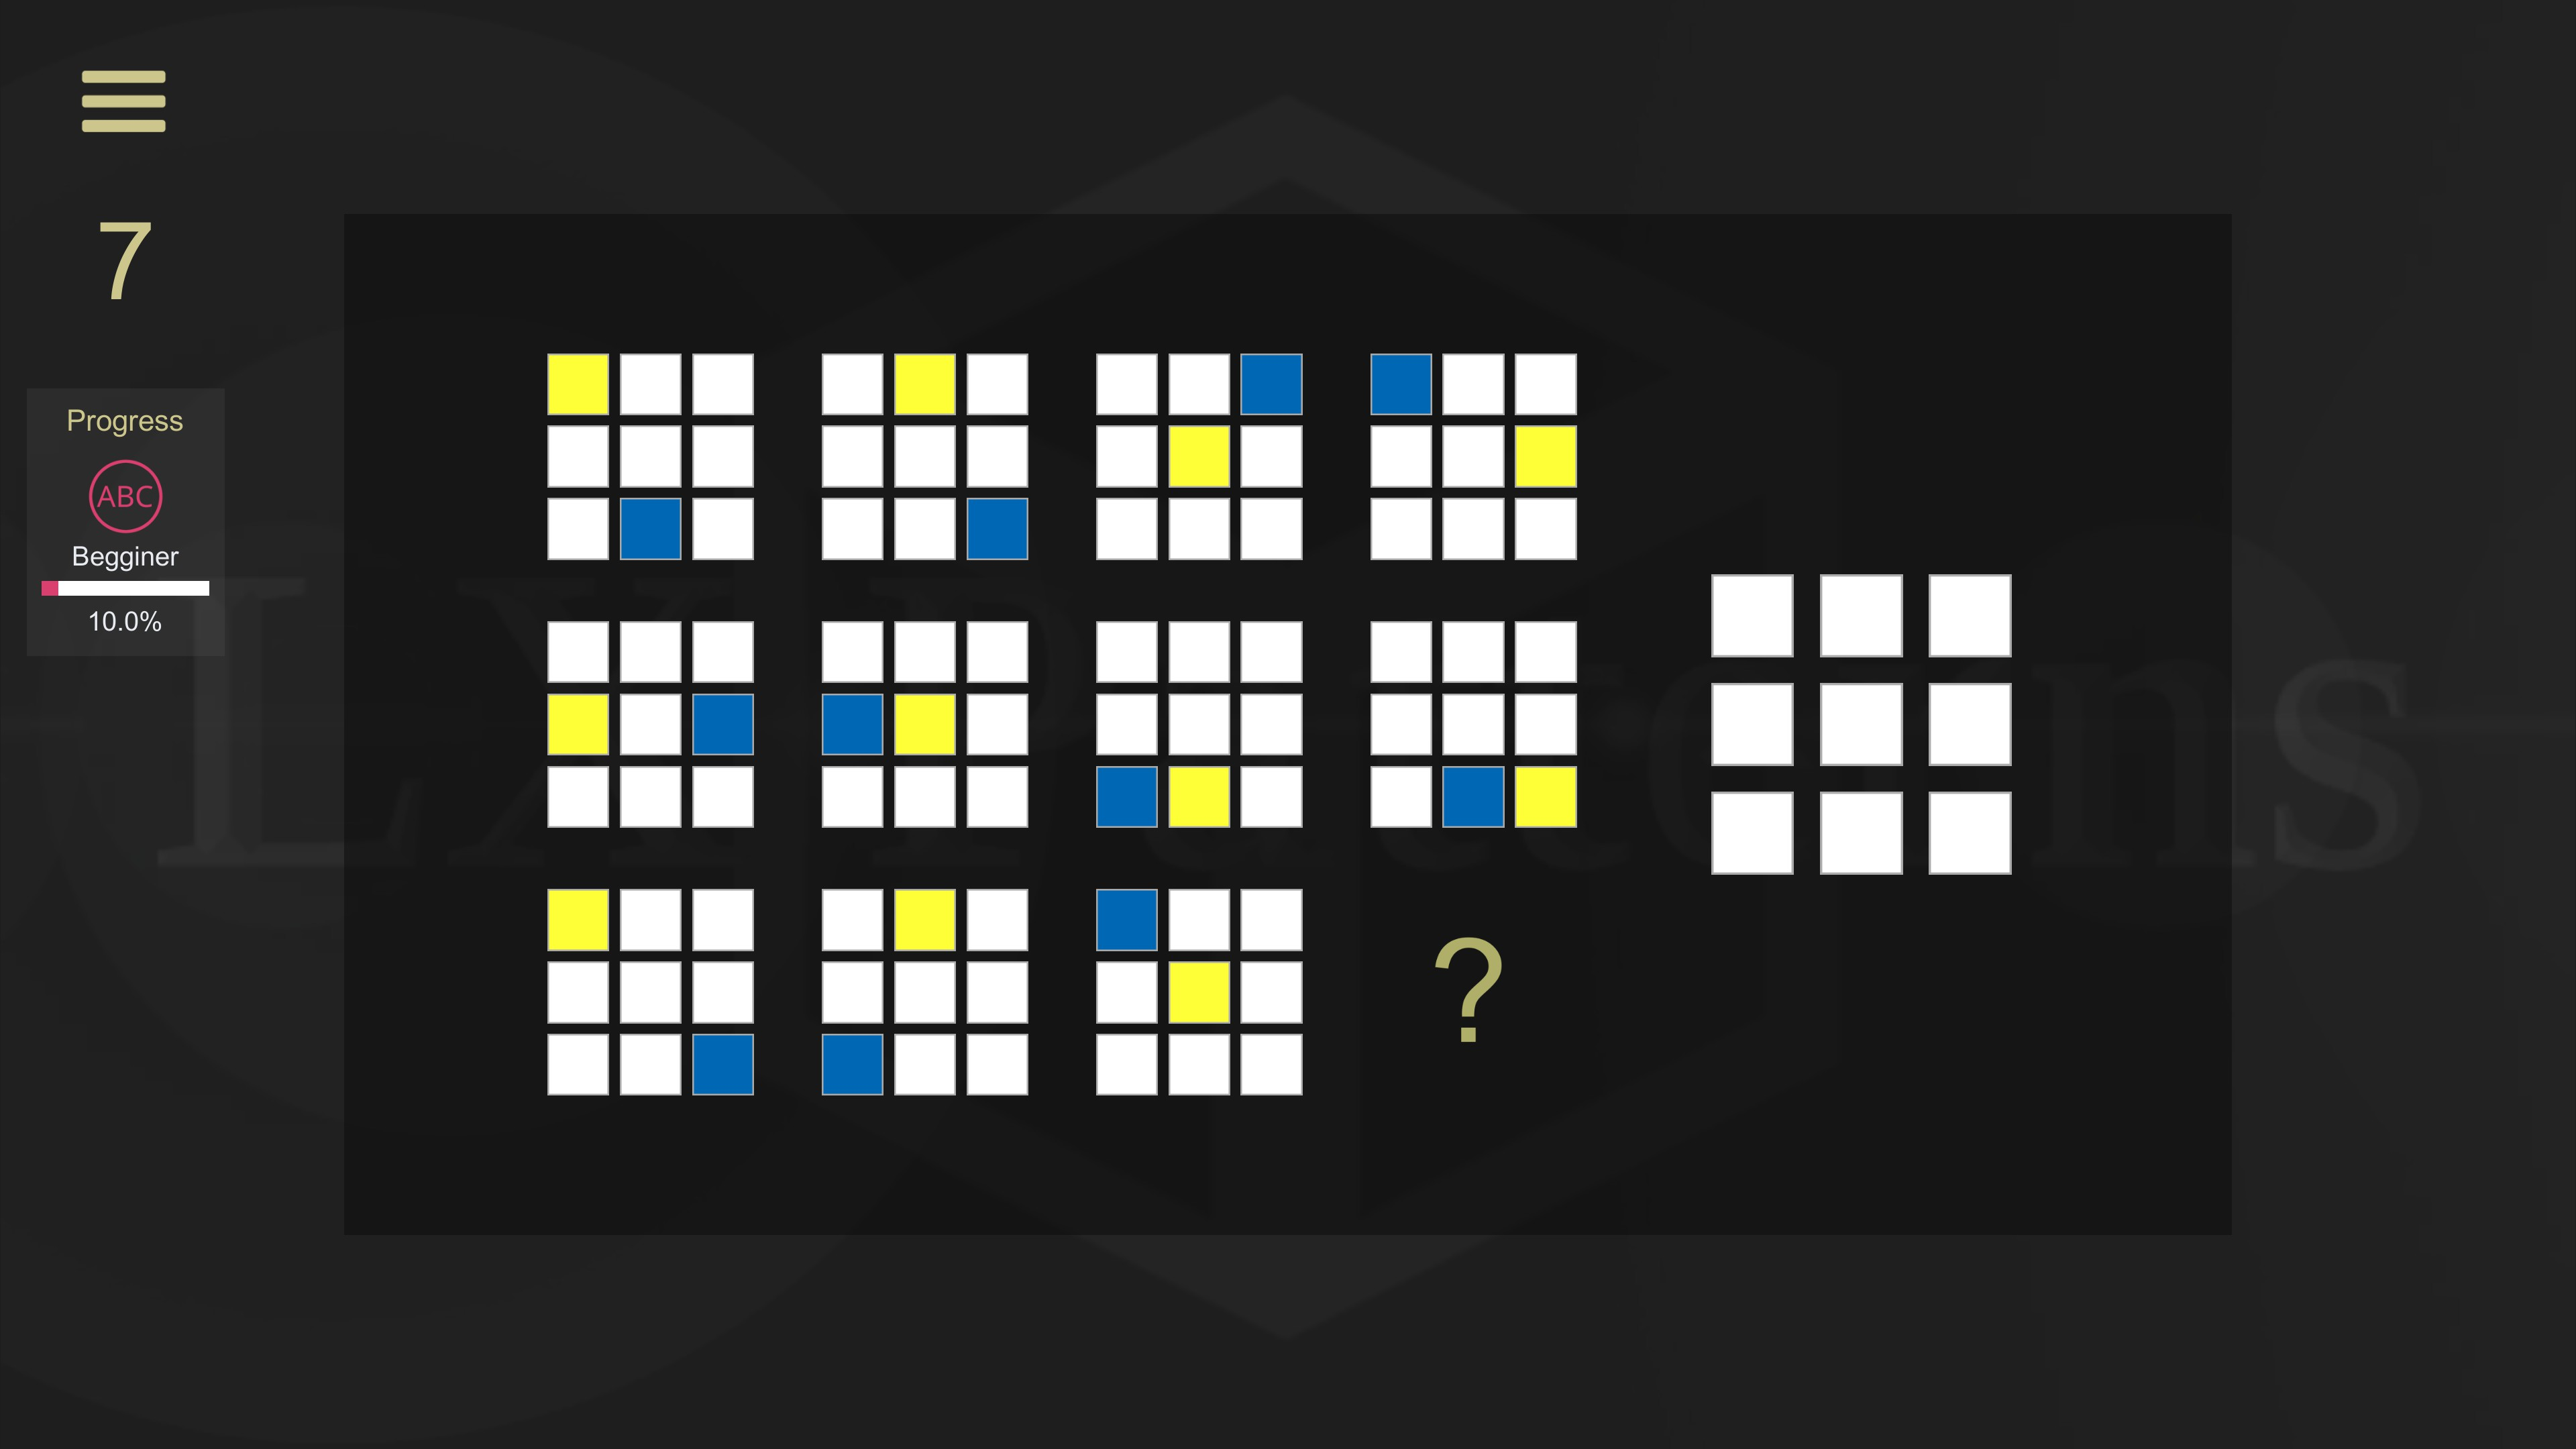 LX Patterns. Level 7 beginner puzzle. 11 3 by 3 grids of color squares are shown. The player must provide what the 12th grid would be.